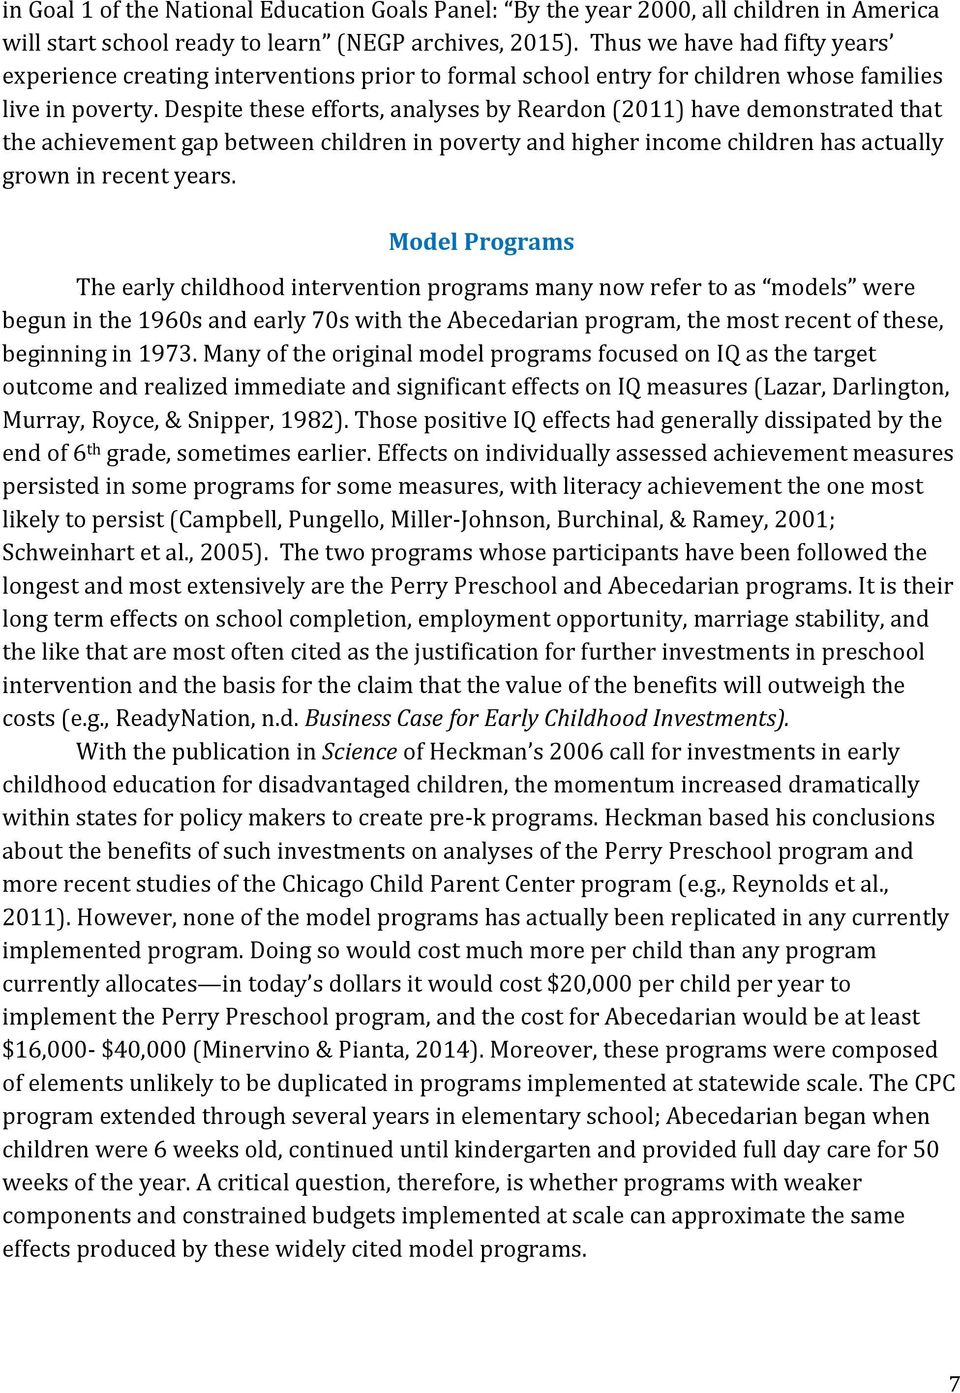 Despite these efforts, analyses by Reardon (2011) have demonstrated that the achievement gap between children in poverty and higher income children has actually grown in recent years.